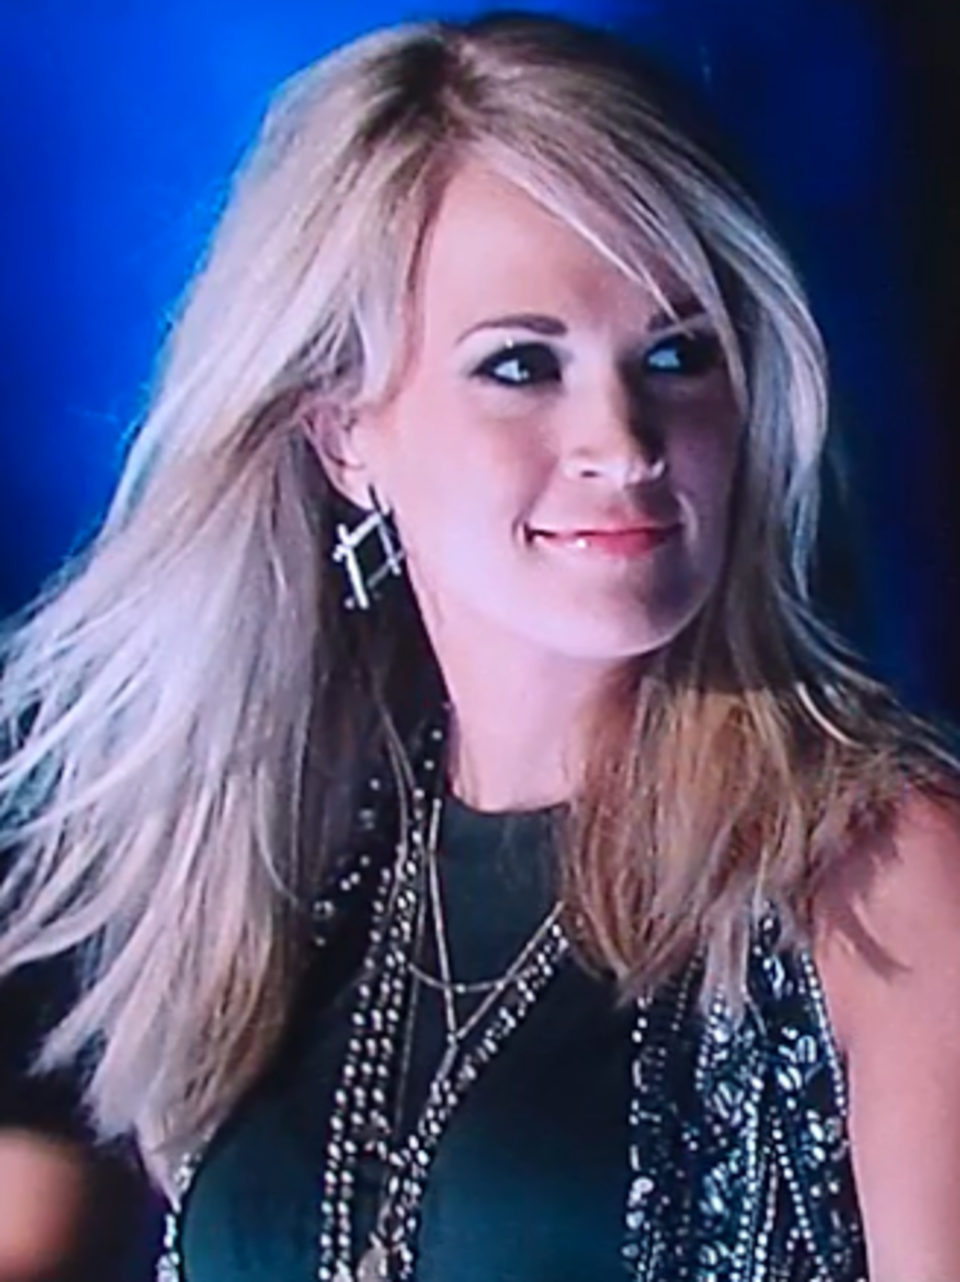 Carrie Underwood S Mom Talks About The American Idol Experience